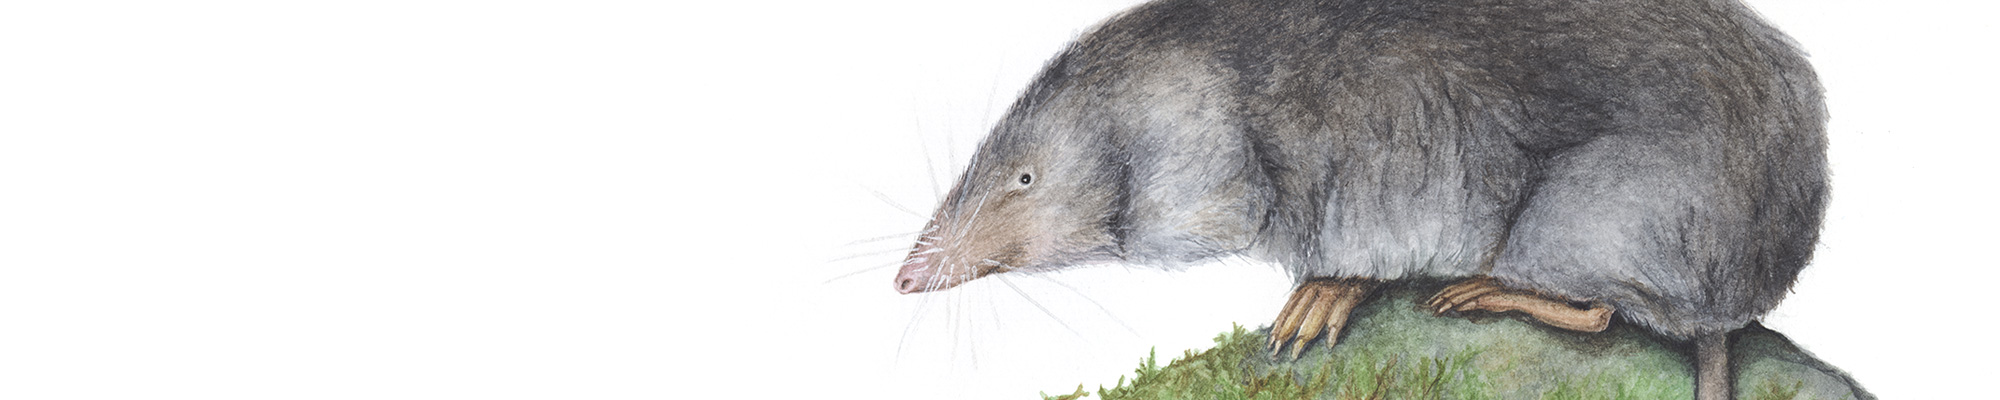 watercolor illustration of a short-tailed shrew